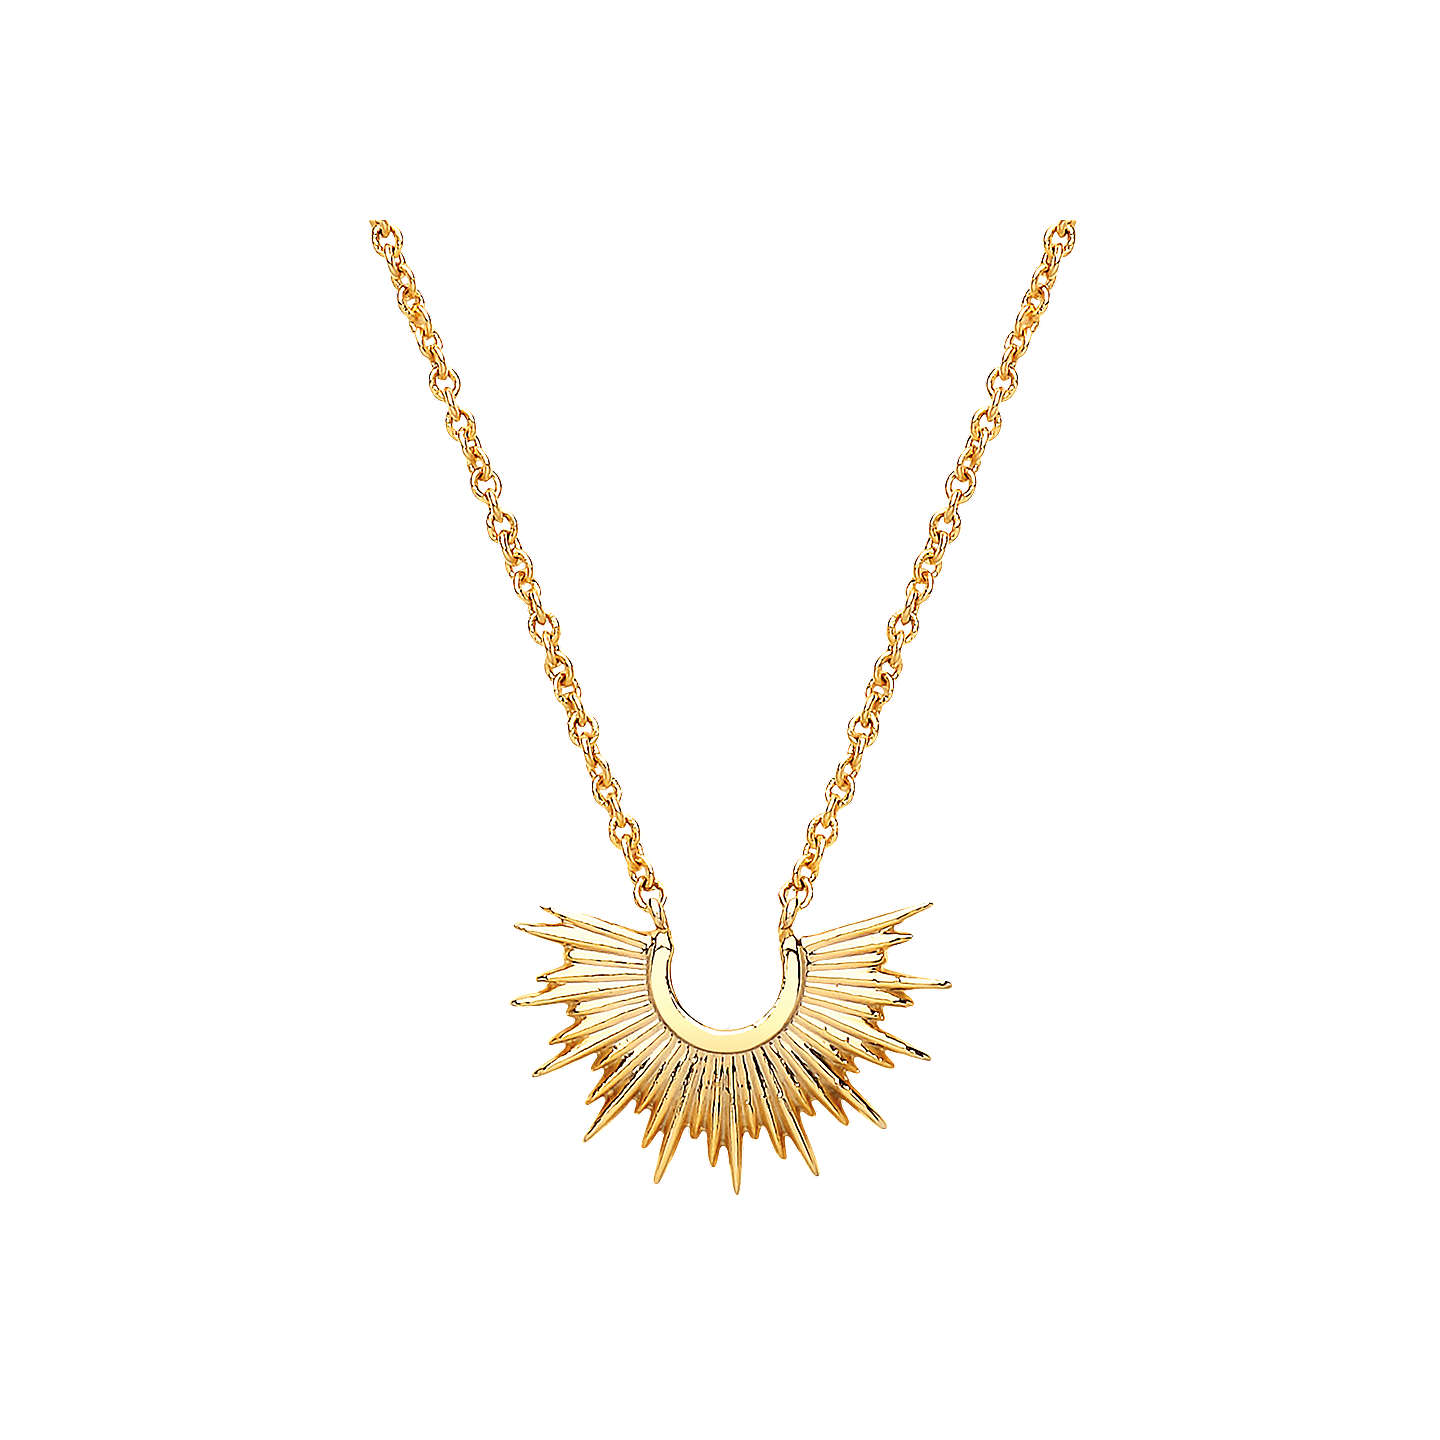 jewels online unnamed coin shop alv sunburst necklace